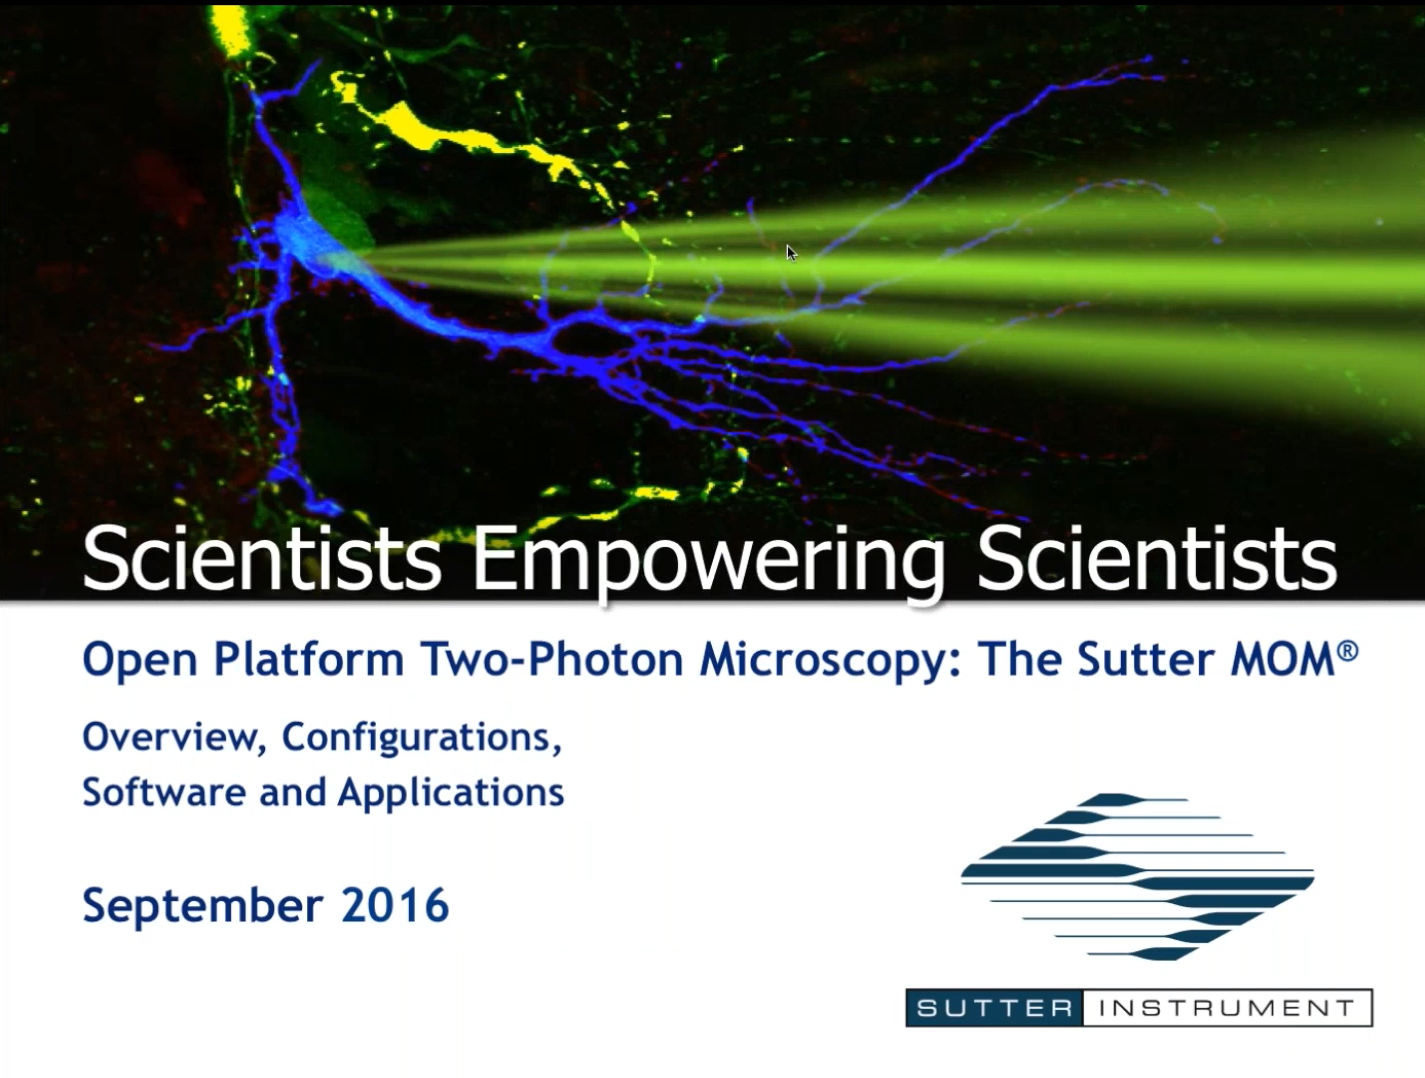 Open Platform Two-Photon Microscopy: The Sutter MOM - Scientists Empowering Scientists